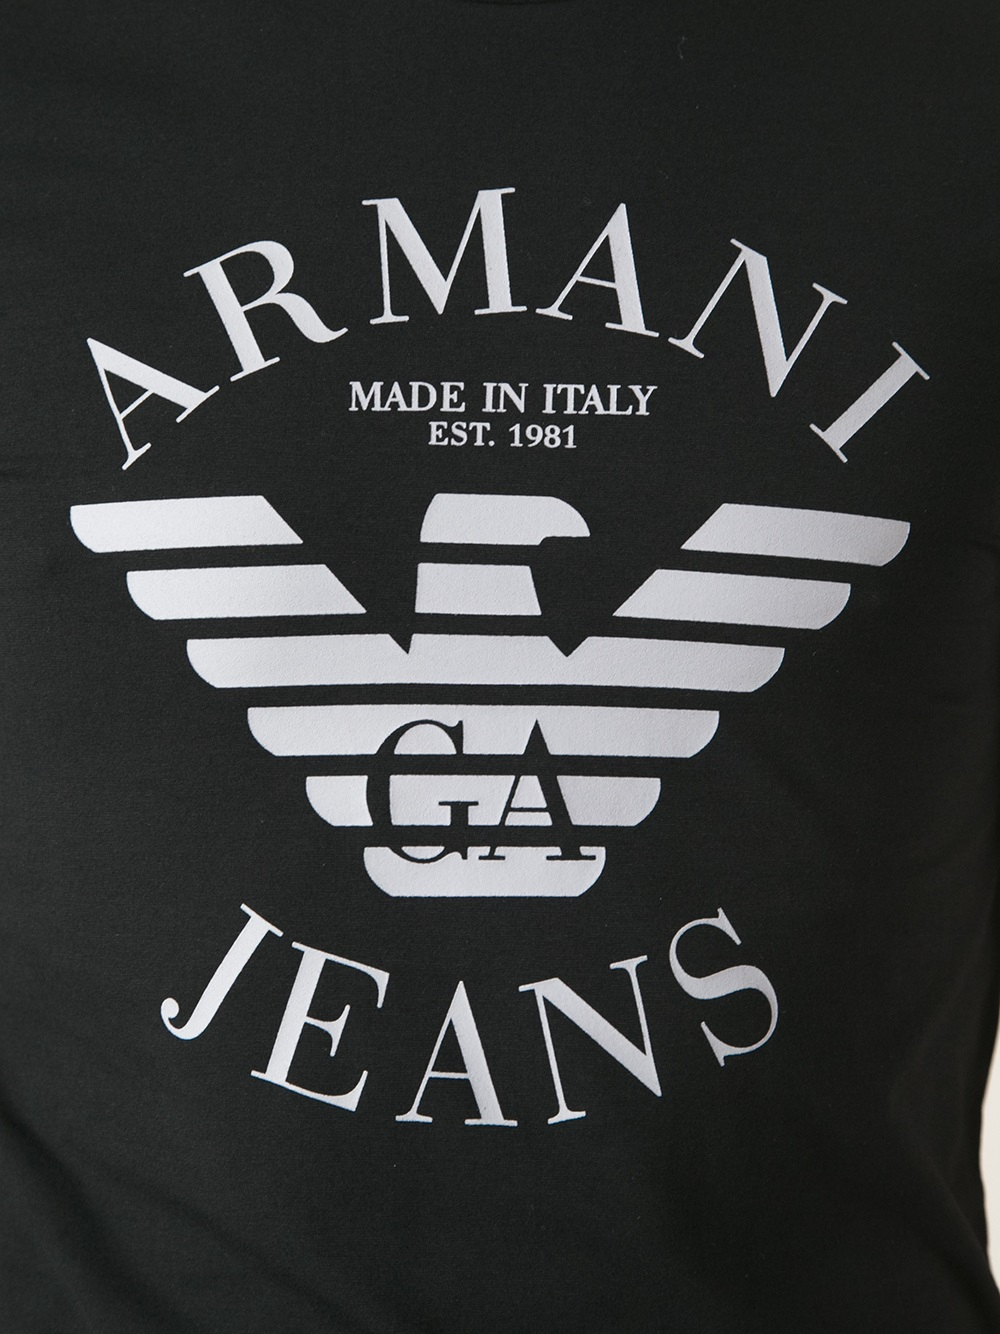 048c9128076 Logos Armani. Gallery Of The Armani Logo Focuses More On The Image ...